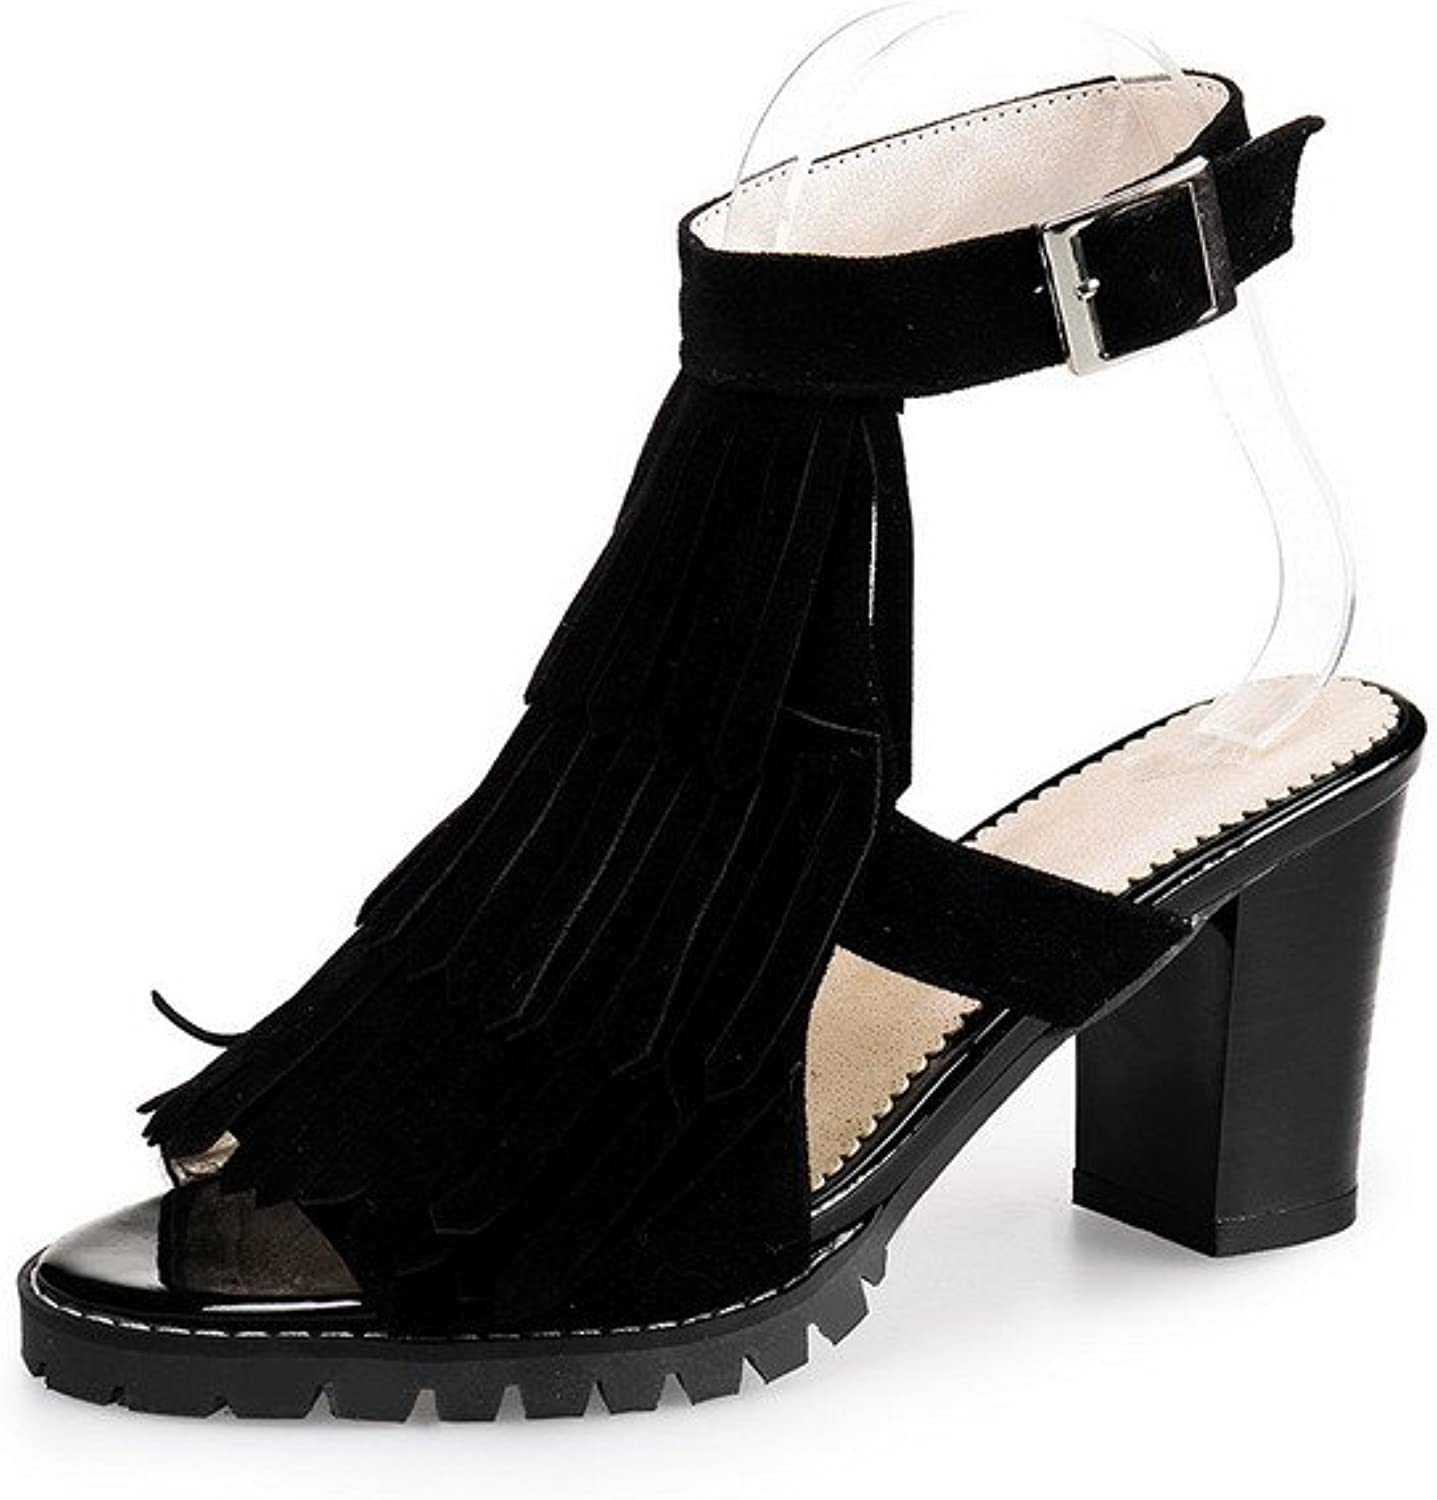 WeenFashion Women's Kitten-Heels Frosted Solid Buckle Open Toe Sandals